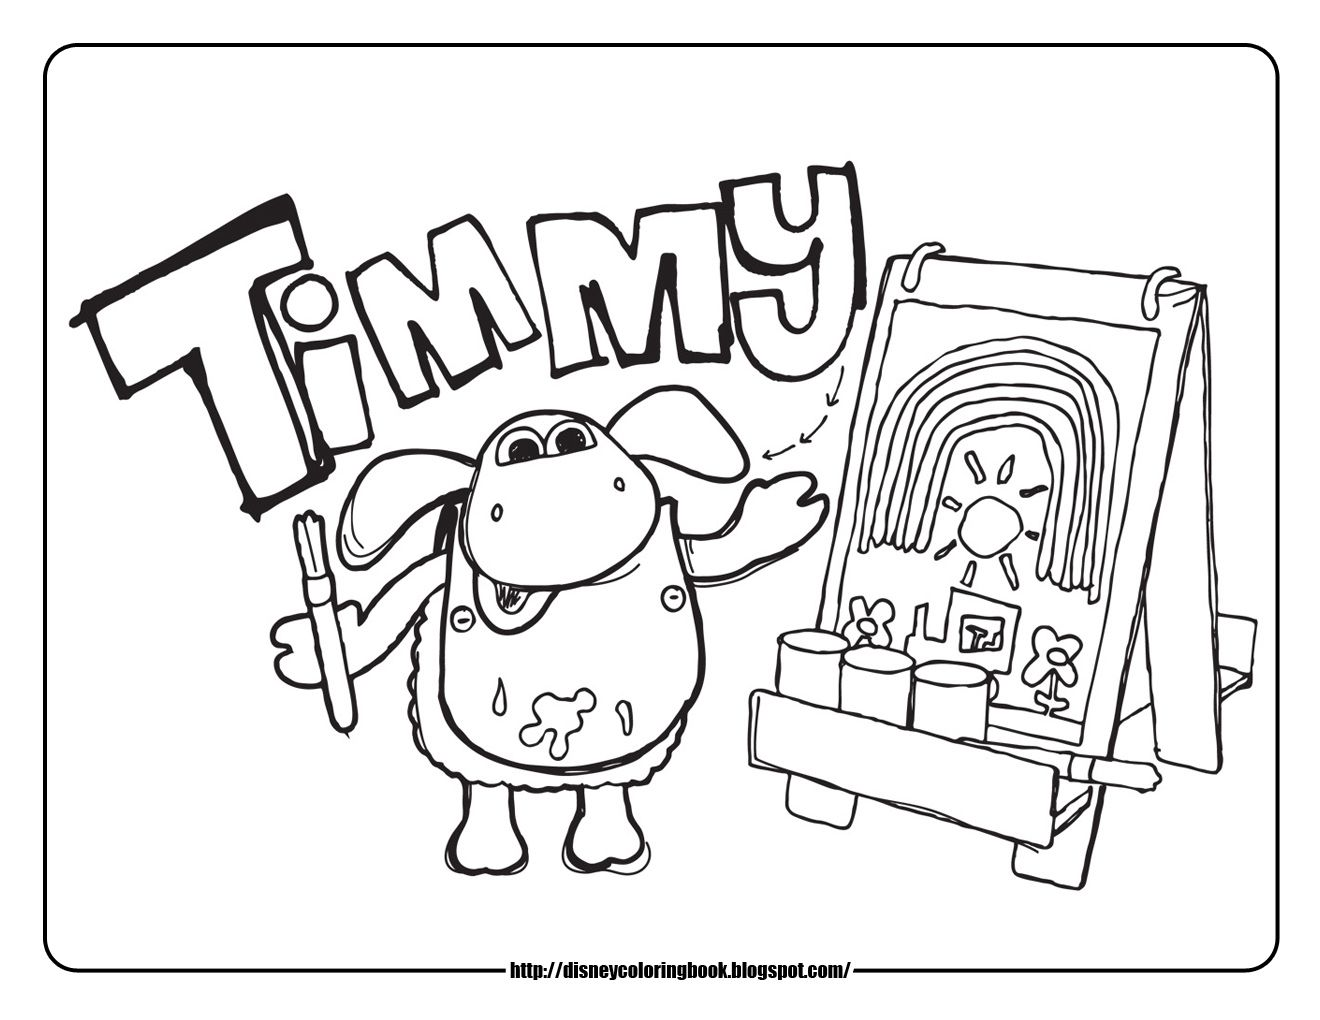 Disney Coloring Pages and Sheets for Kids: Timmy Time 1: Free Disney ...